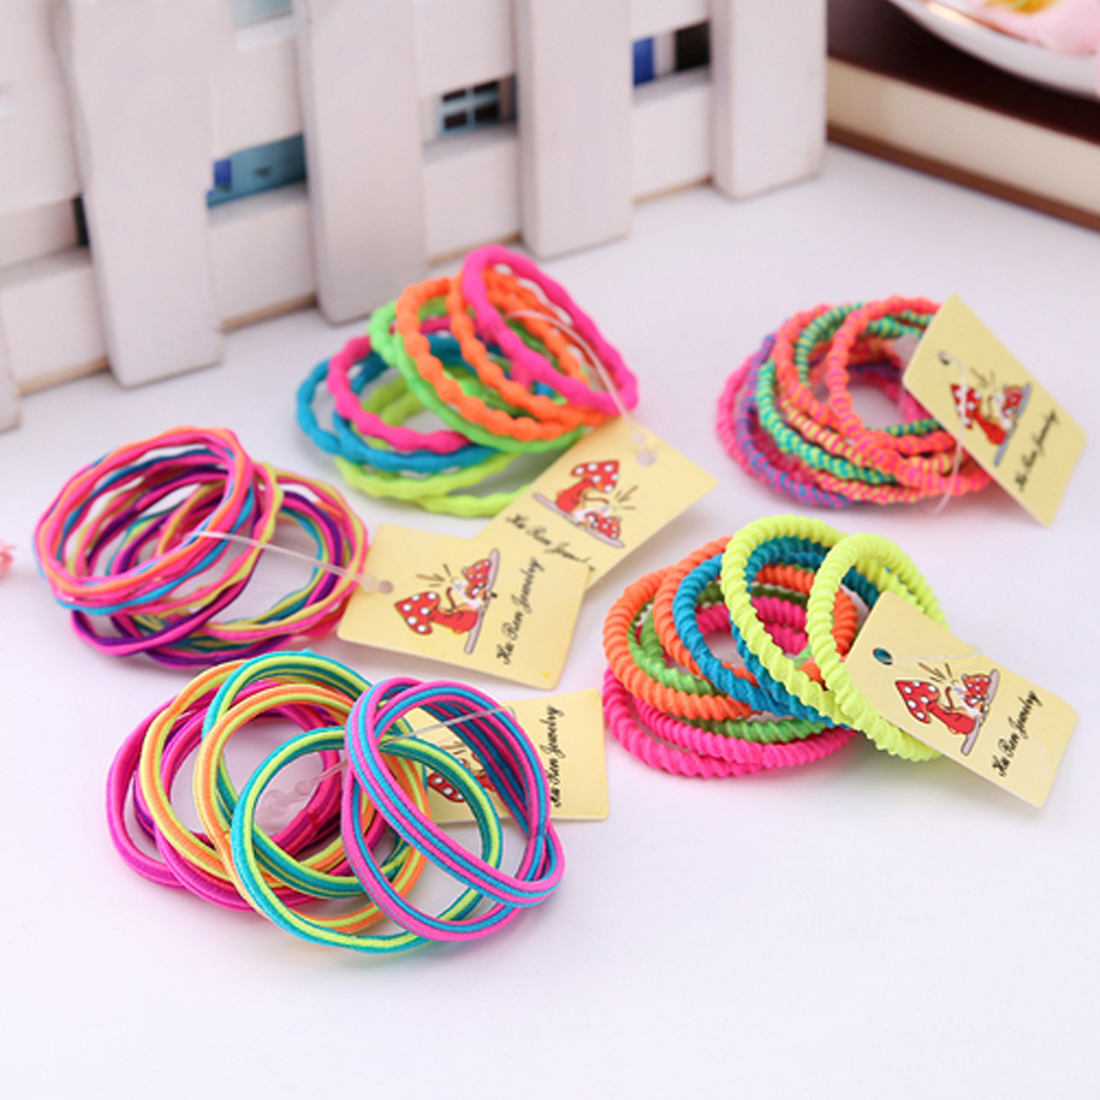 10PCS/Lot Girls Colorful Elastic Hair Band Lovely Hair Ropes Ponytail Holder Scrunchie Gum   Headwear   Hair Accessories